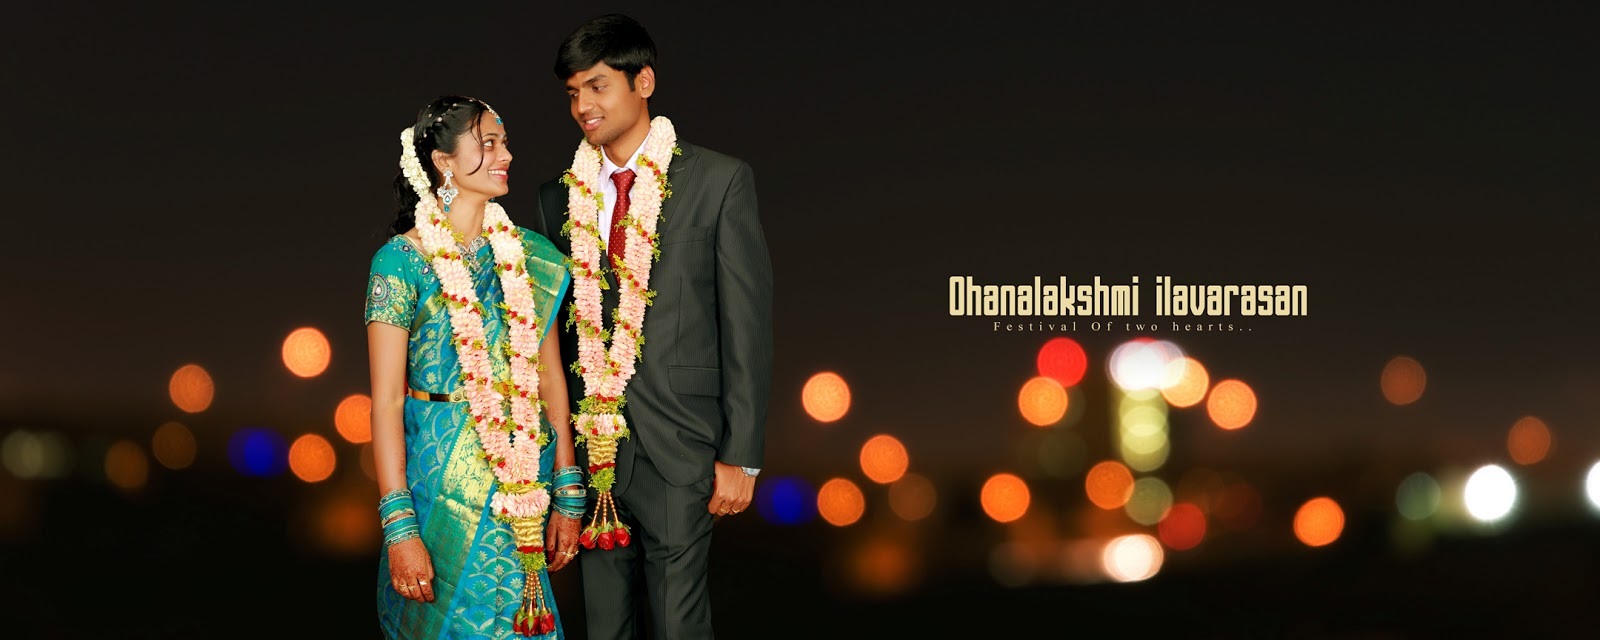 Mumbai Best Wedding Photo Album Designing And Making